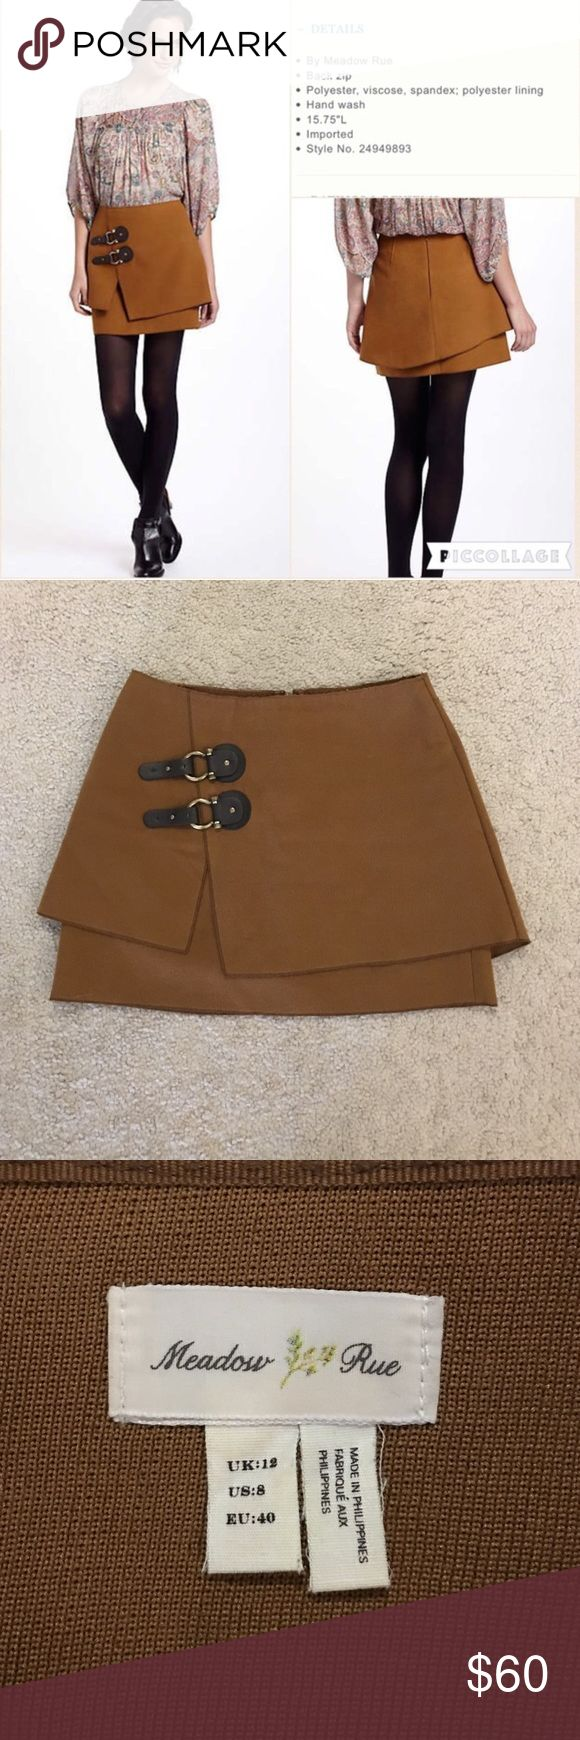 Anthropologie Meadow Rue Felt buckled skirt 8 This is the felt buckled skirt by Meadow Rue for Anthropologie in US size 8, UK size 12. This skirt is in excellent condition! Thanks for looking!!! Anthropologie Skirts Mini